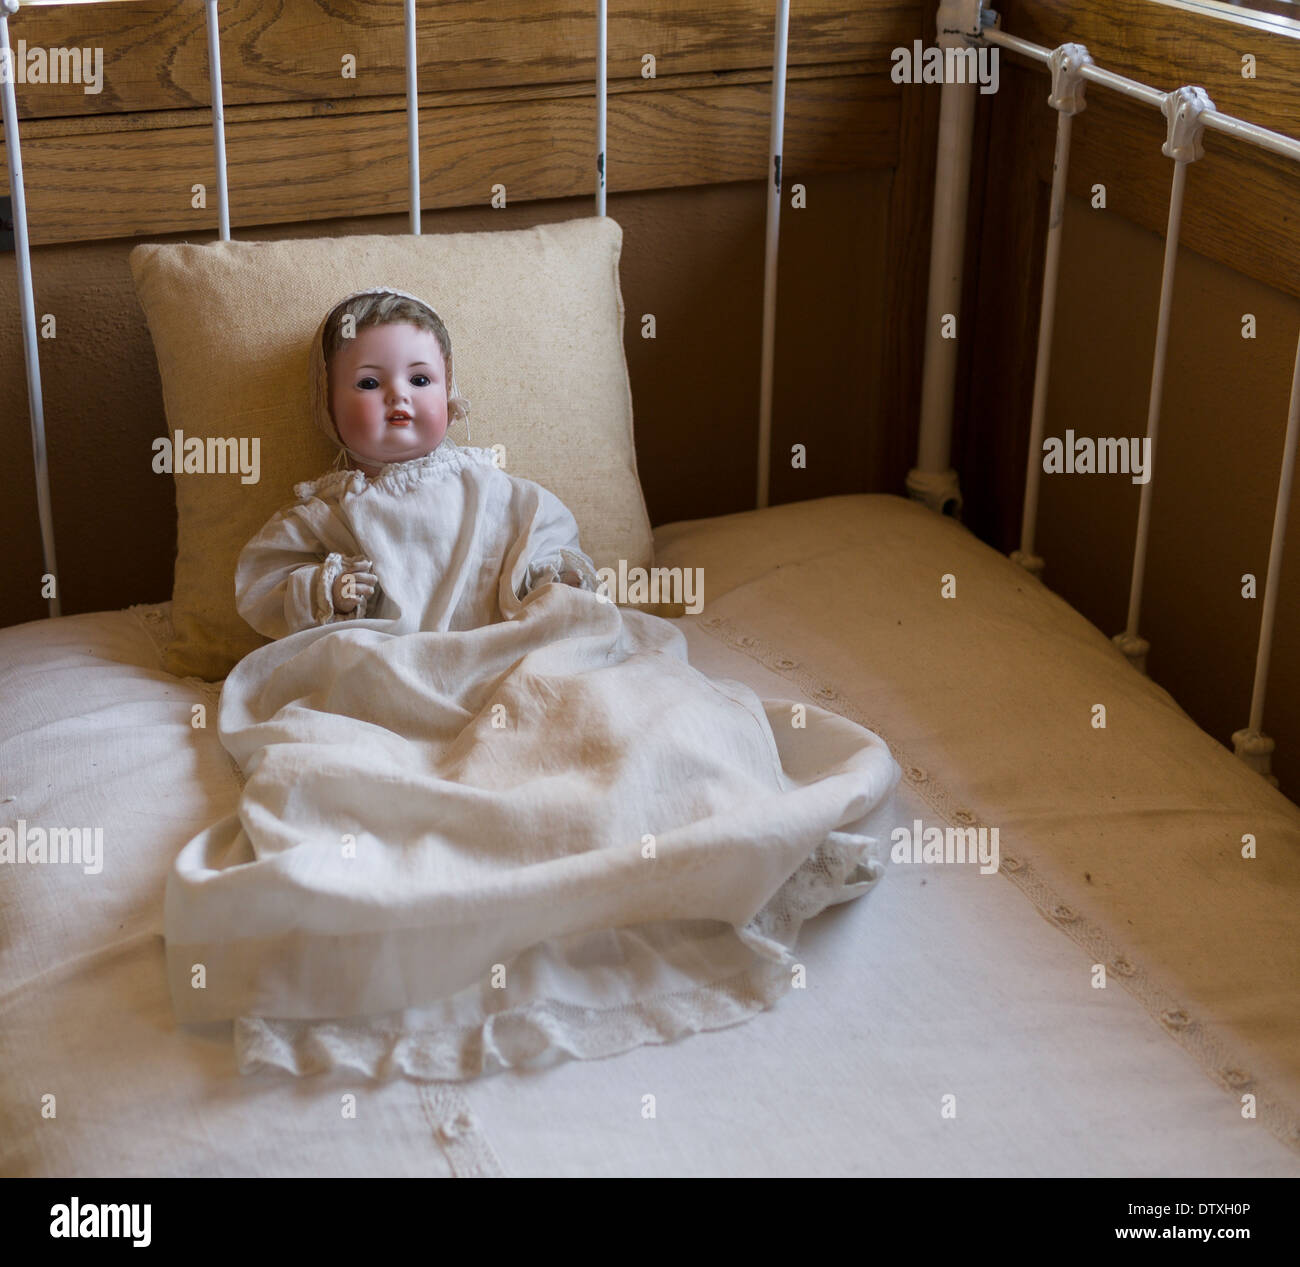 Old porcelain doll propped up in an antique metal crib . An early twentieth century doll decorates the Meyer May House - Stock Image